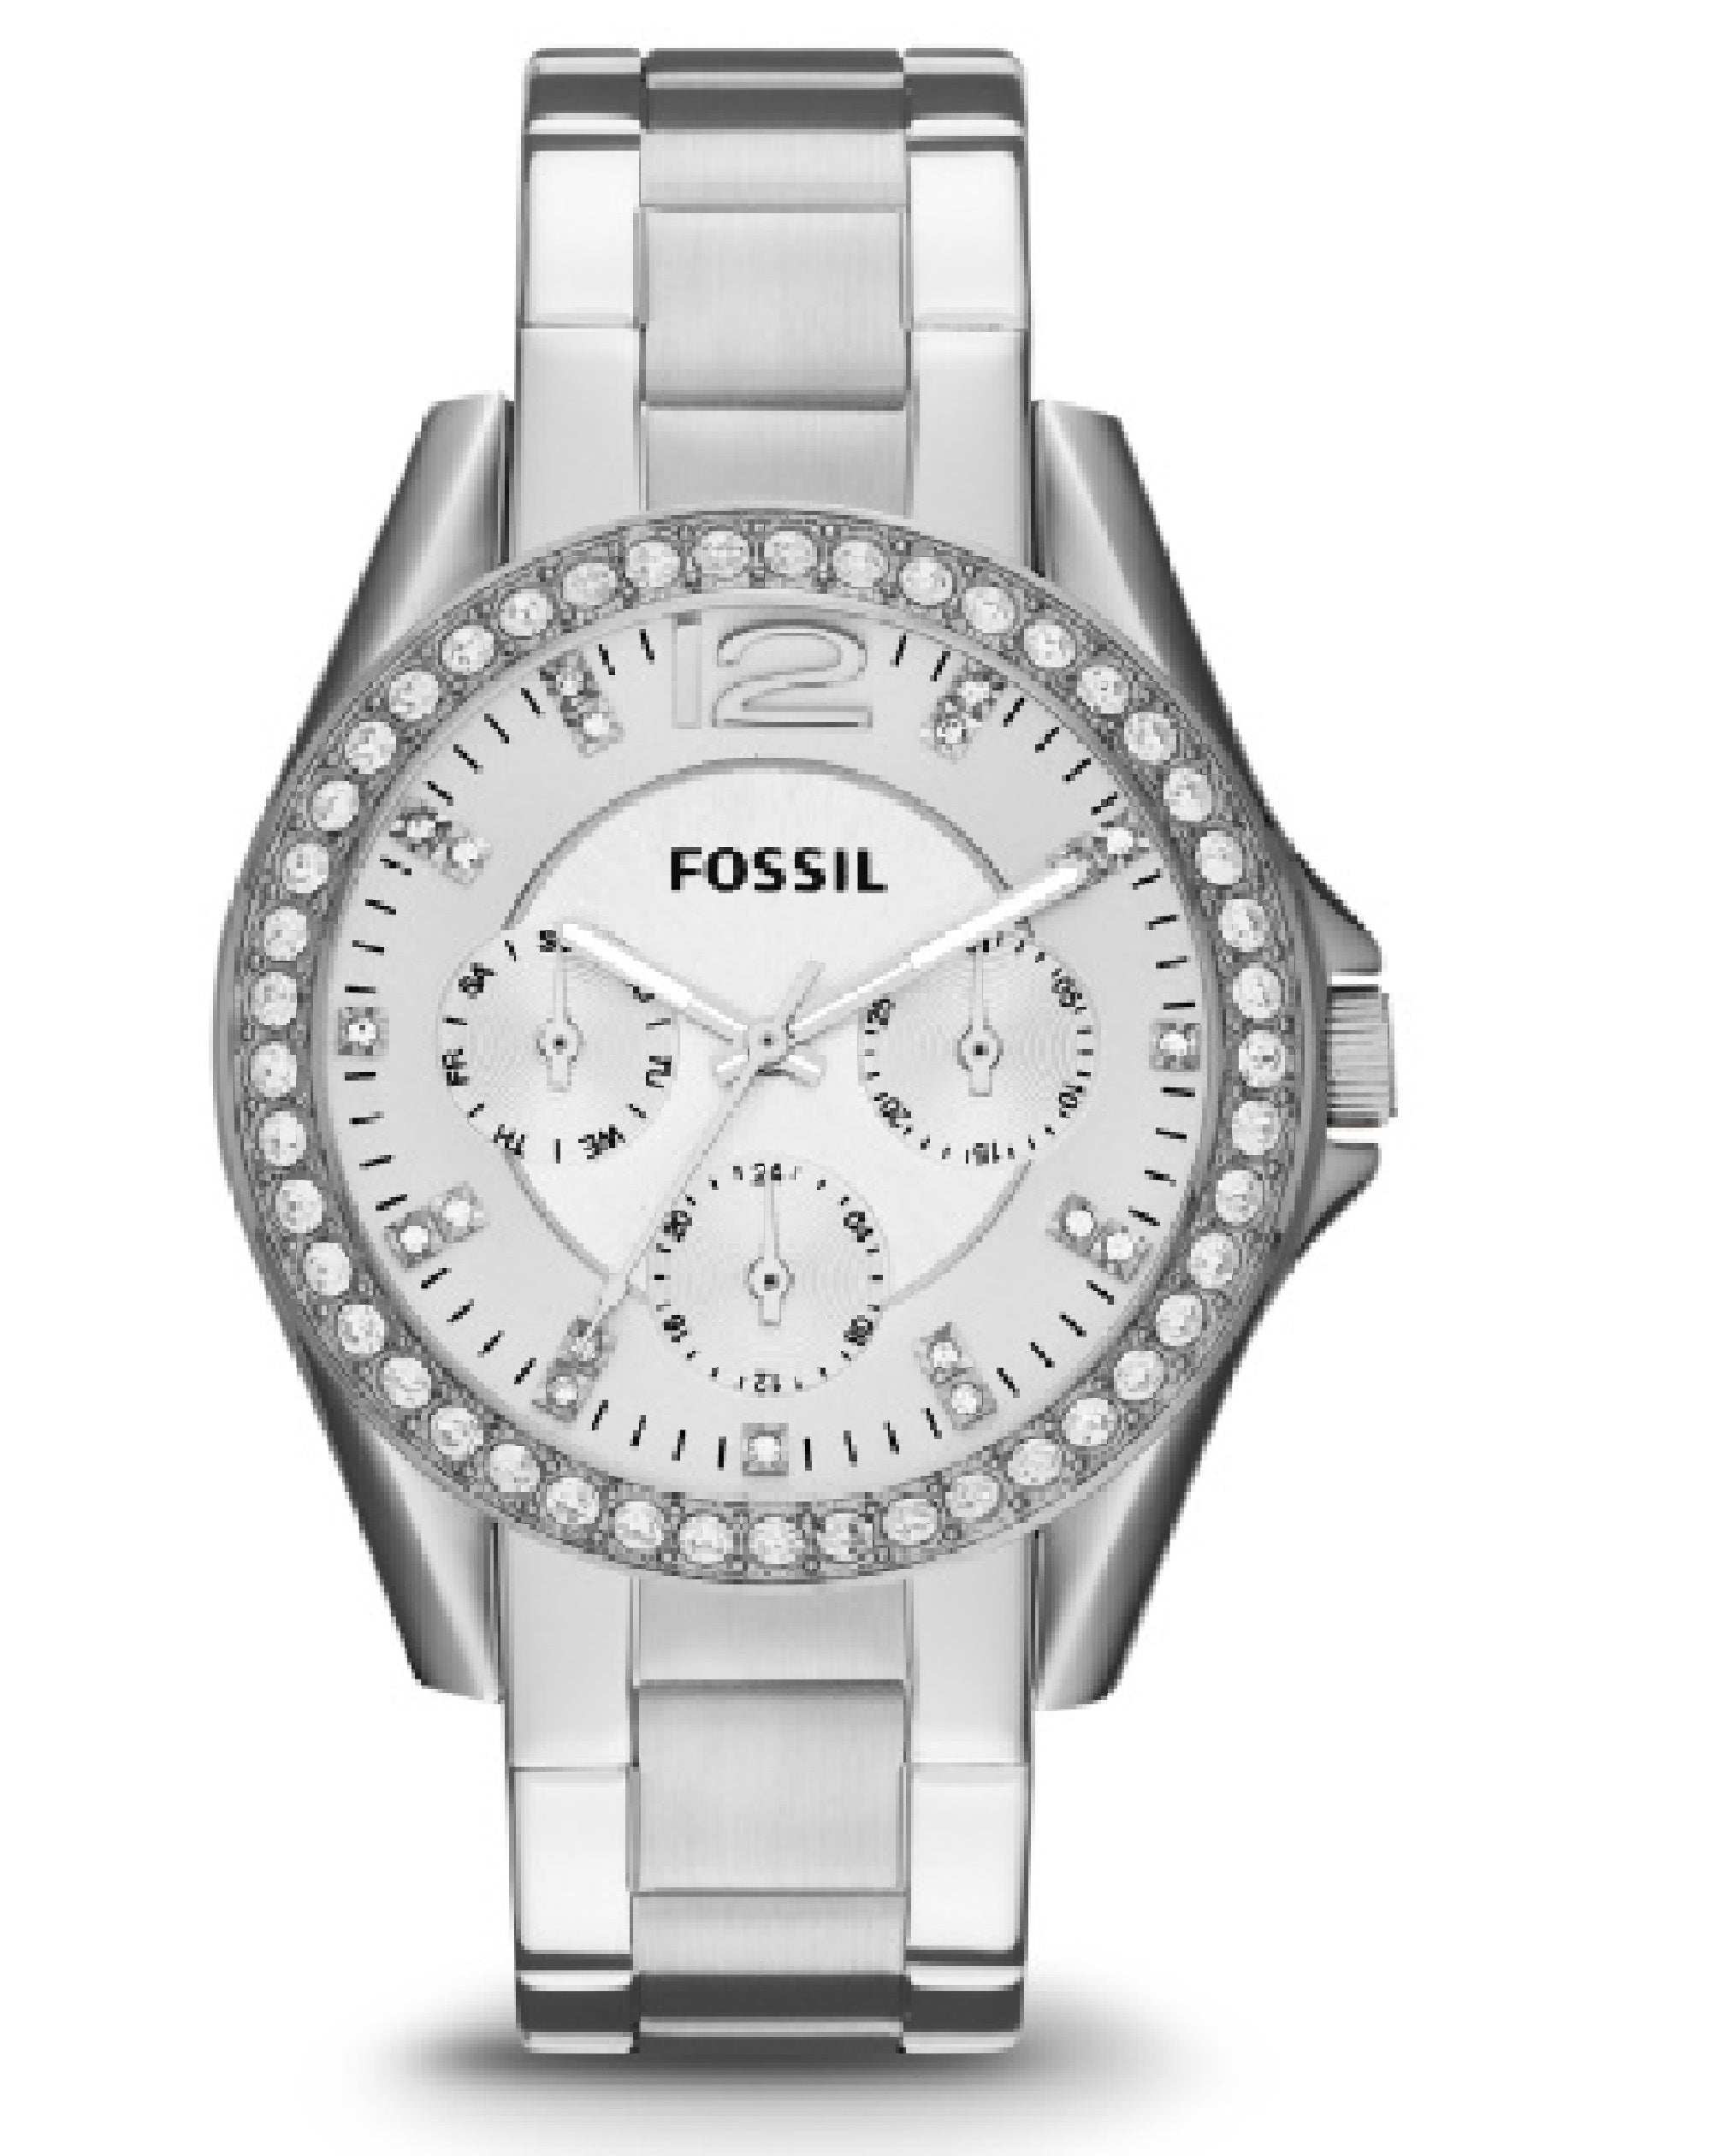 ES3202 Fossil Riley Multifunction Date Stainless Steel Watch